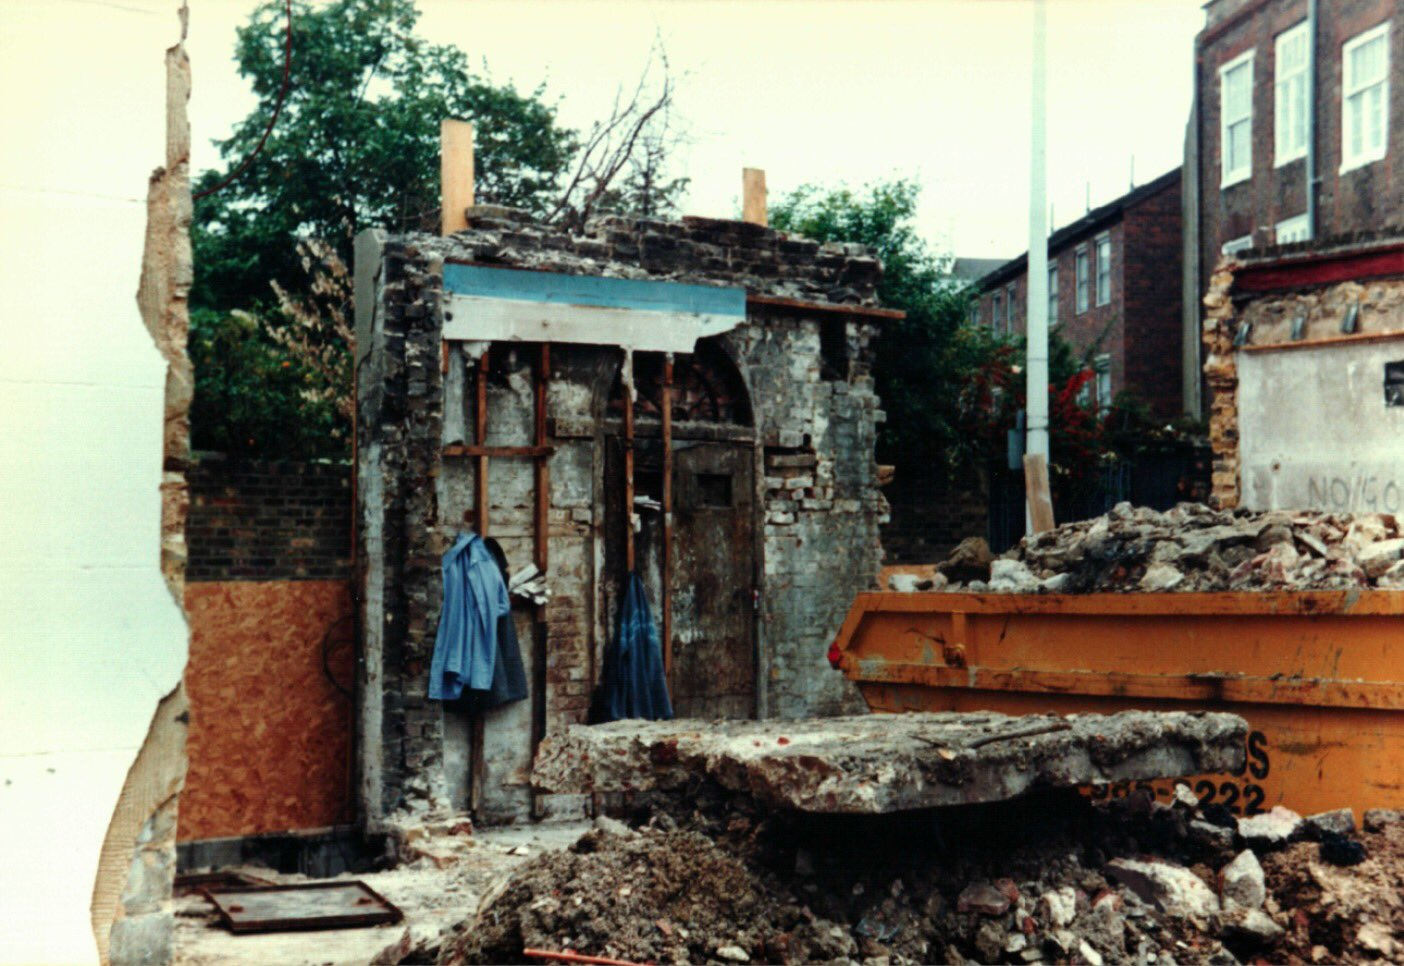 Demolition of the buildings surrounding the lock-up, and the rear of the lock-up. Only the original facade remains.